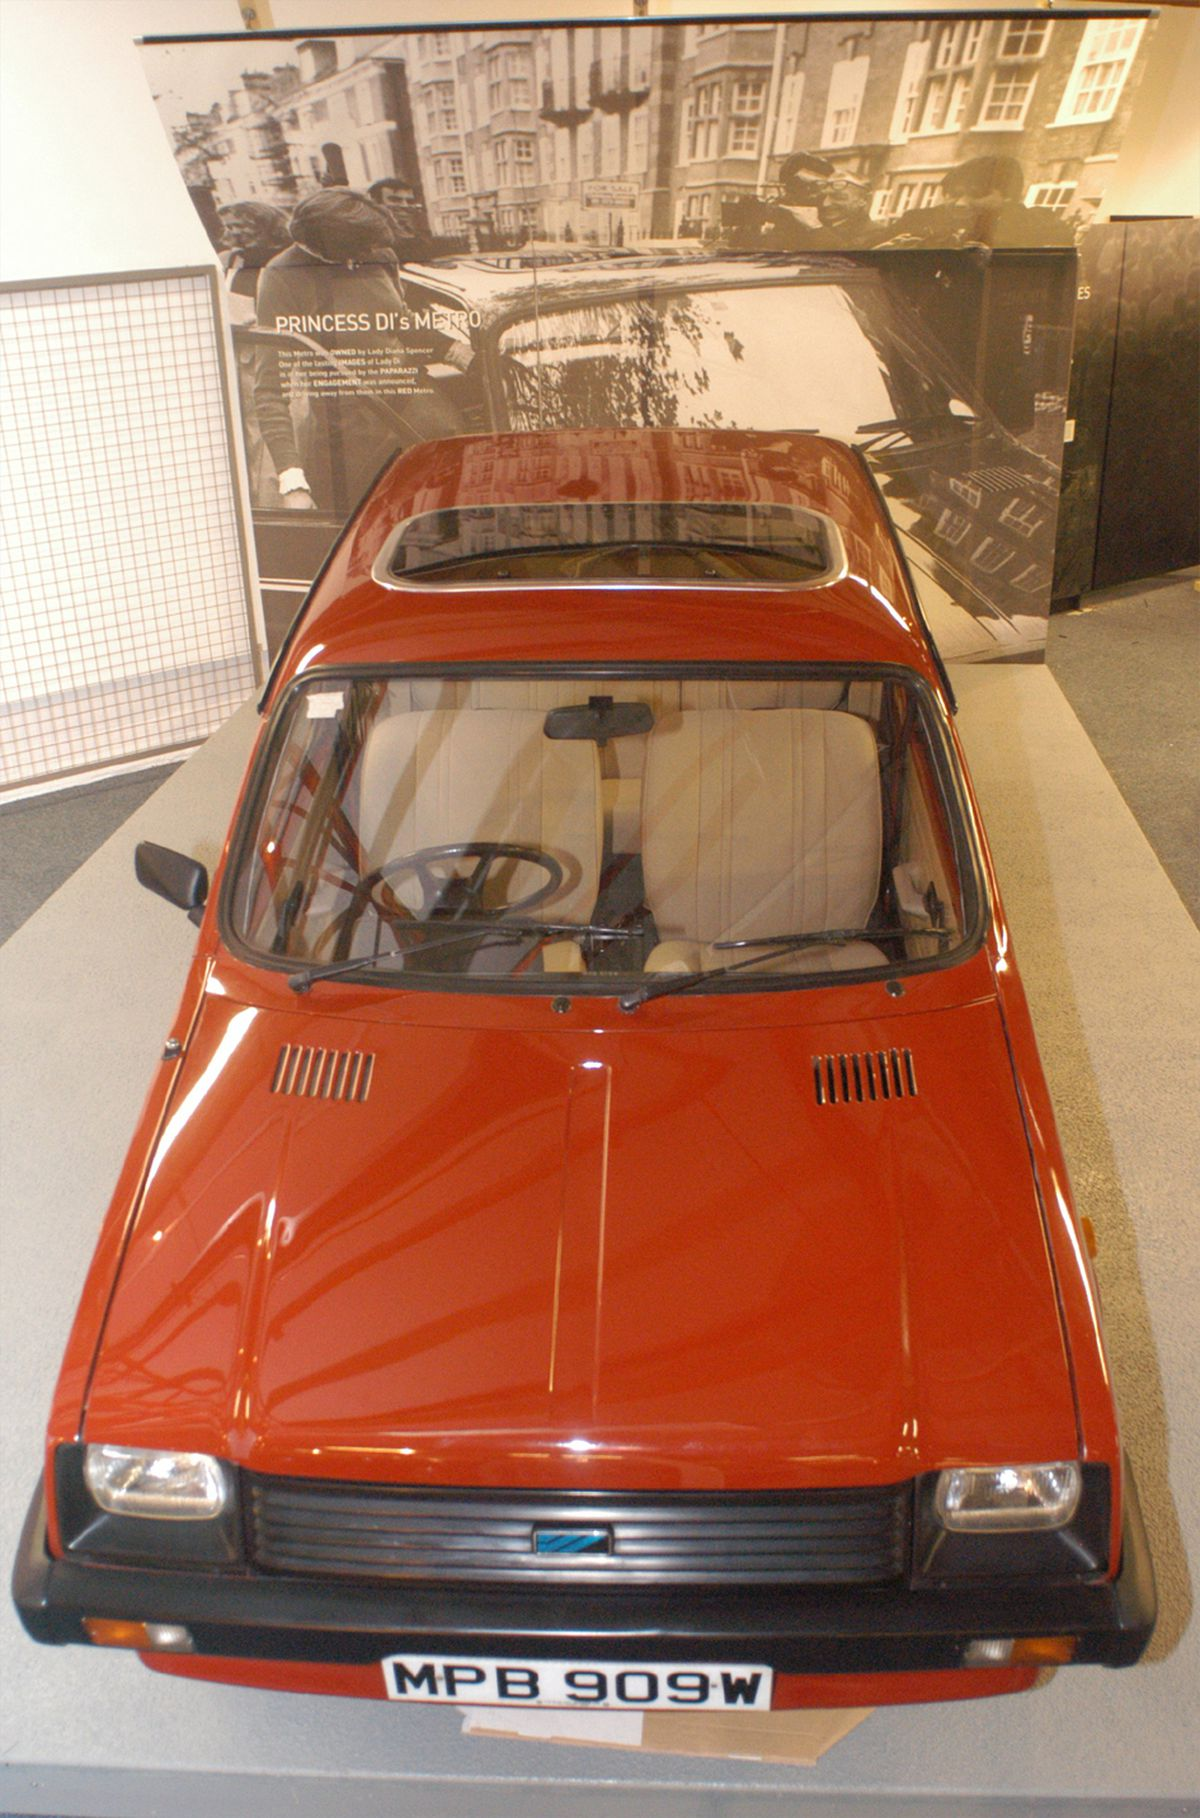 Princess Diana's Metro on display at Coventry Transport Museum